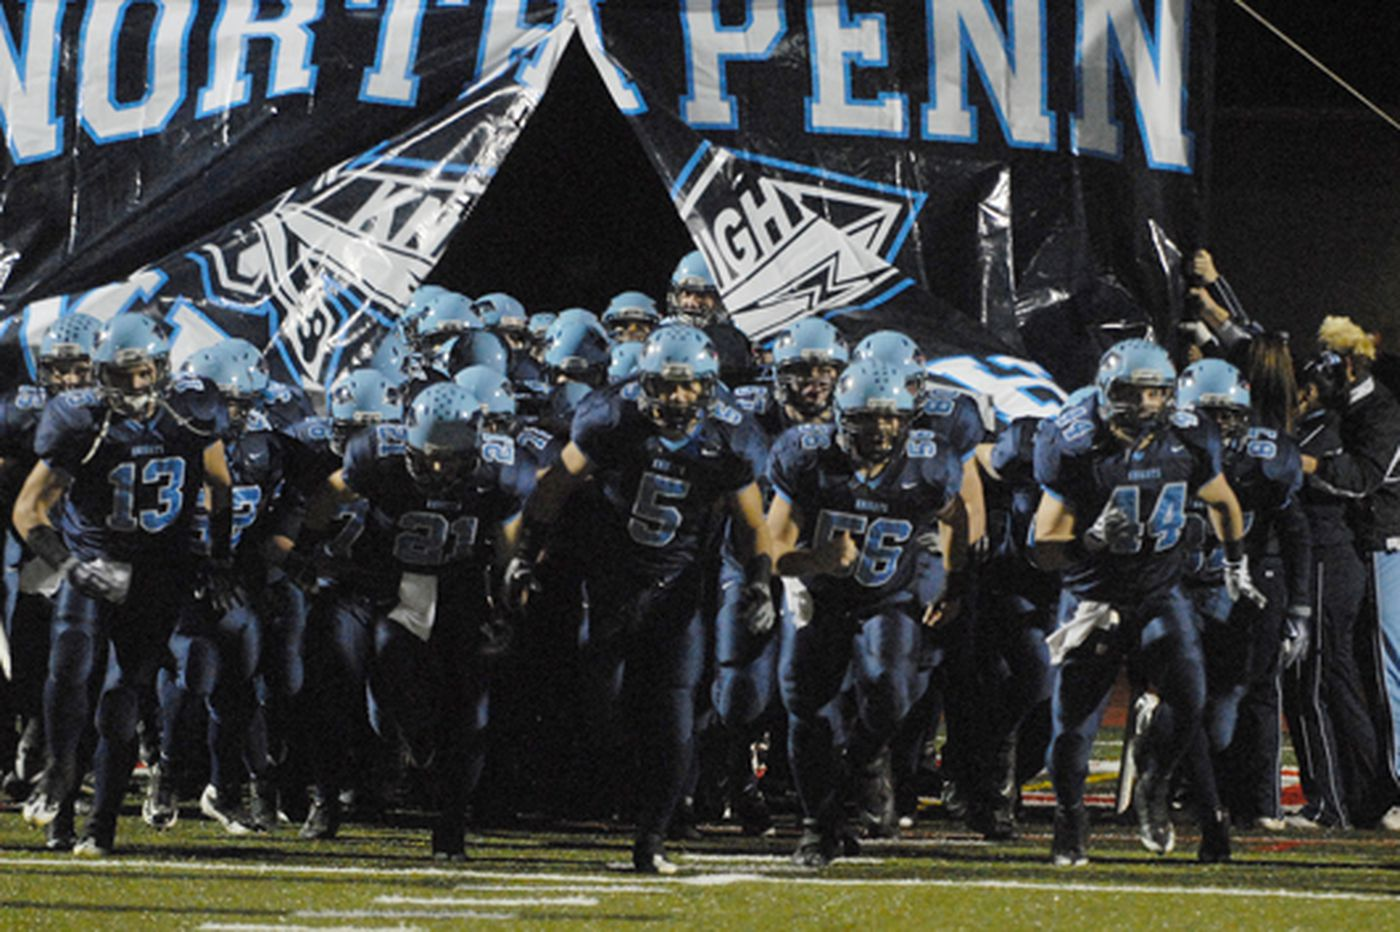 Friday's Southeastern Pa. Football Roundup: RJ Macnamara powers North Penn past undefeated Souderton